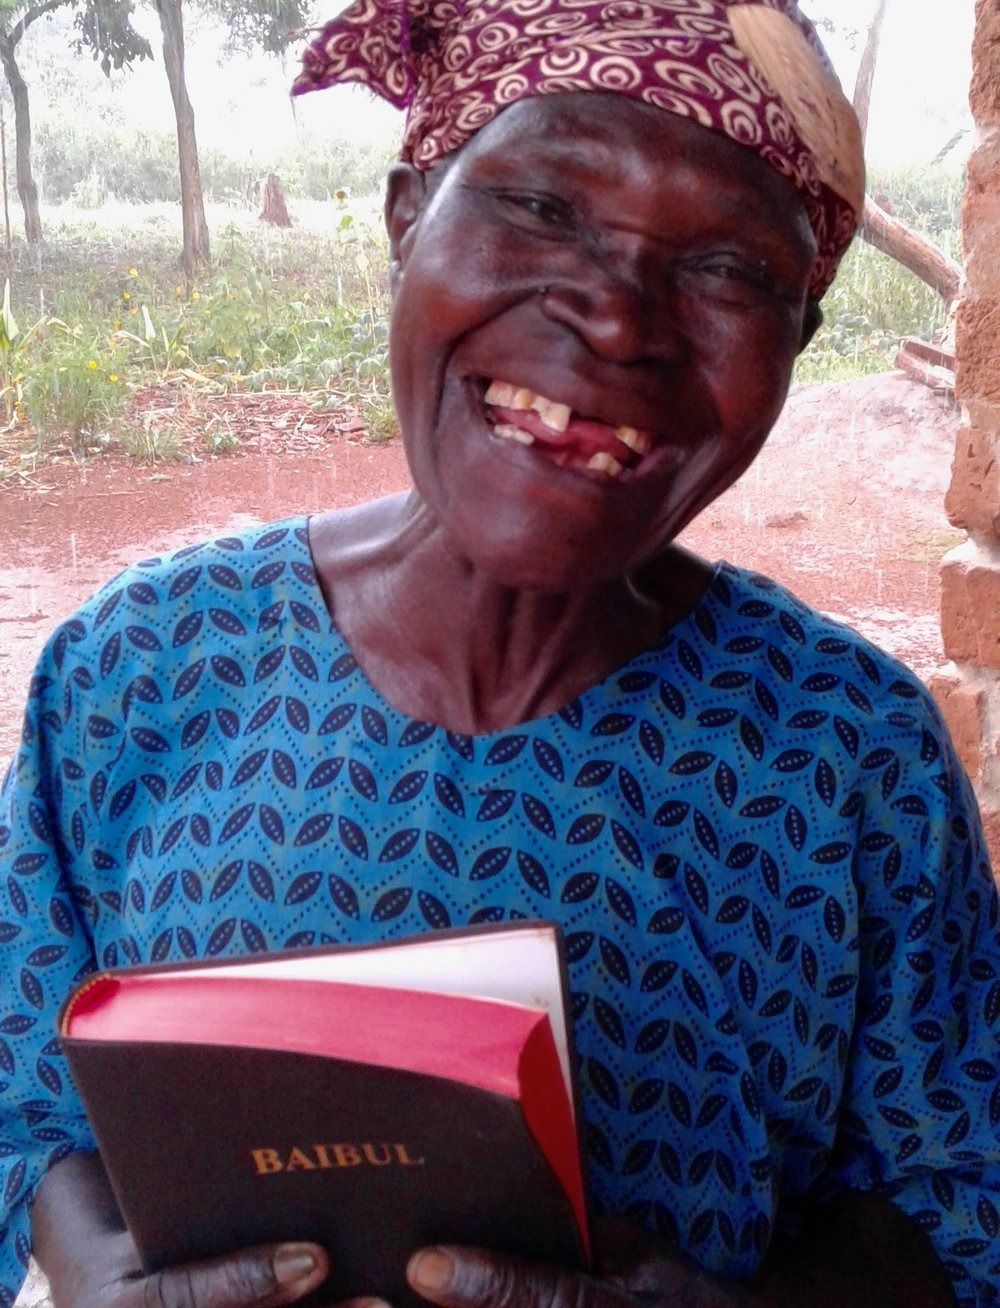 Over 3,000 Bibles placed in eager hands. -